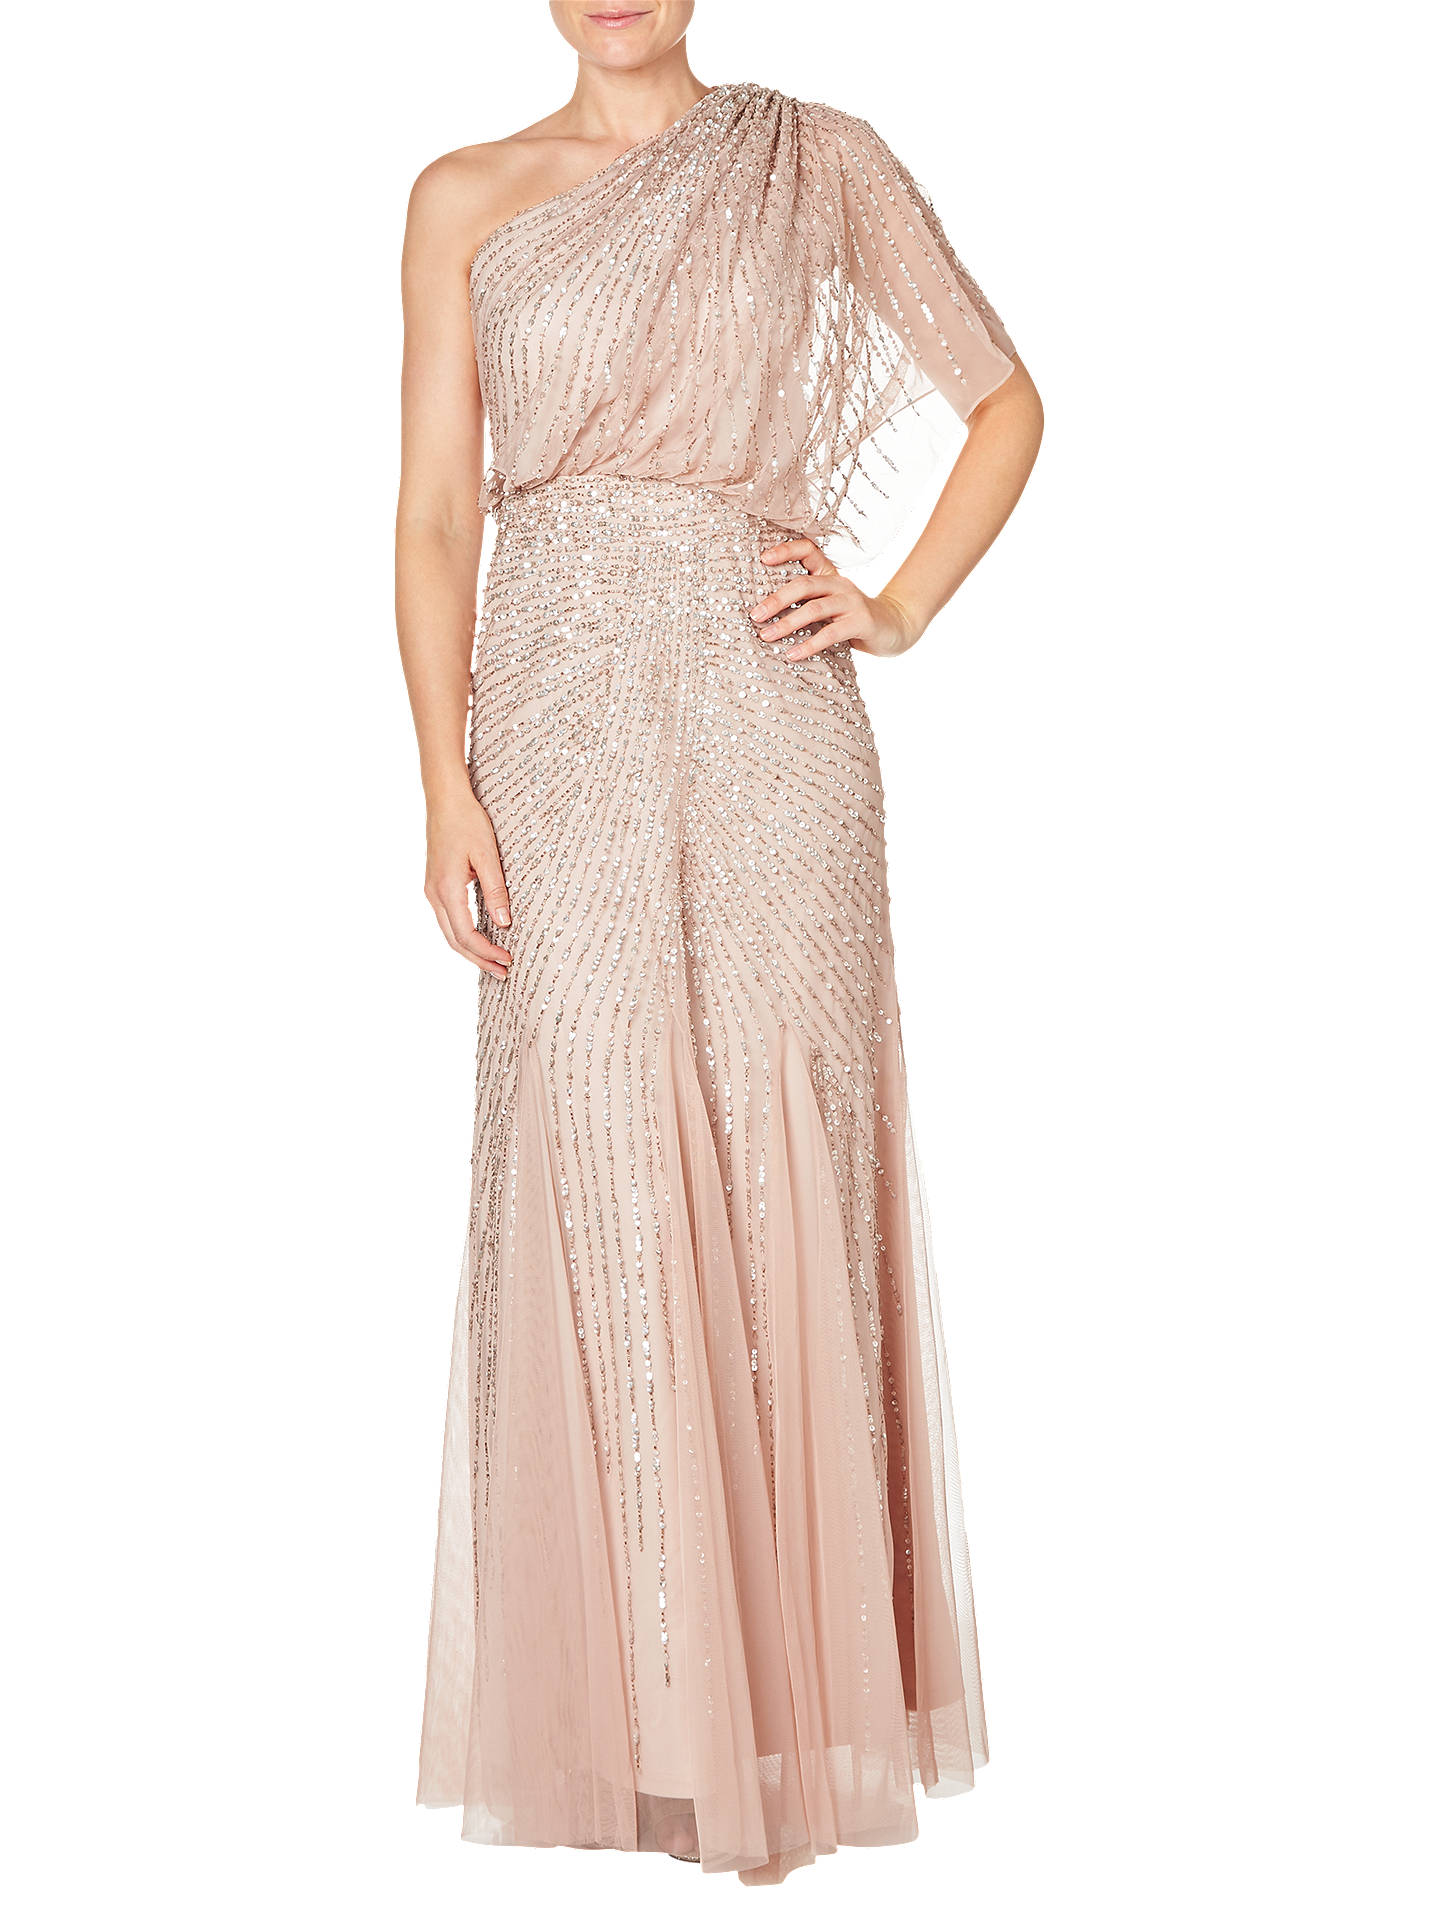 728b2ae2d50 Buy Adrianna Papell One Shoulder Beaded Blouson Gown